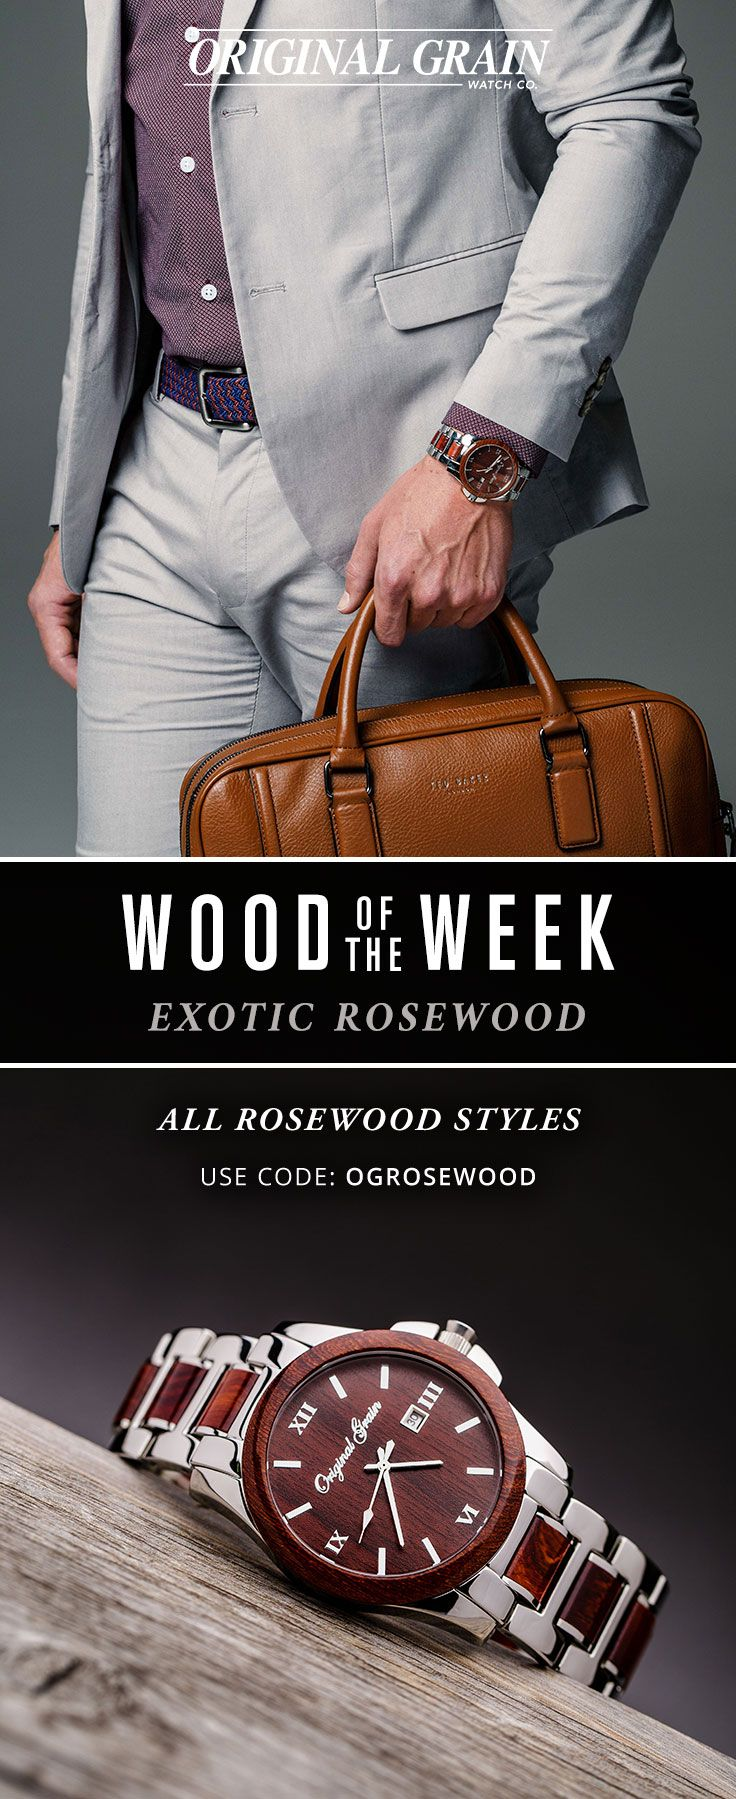 """Wood of The Week - Featuring Exotic Rosewood. Don't miss out, Take 20% Off all Rosewood Styles with code """"OGRosewood"""" Ends Sunday!"""